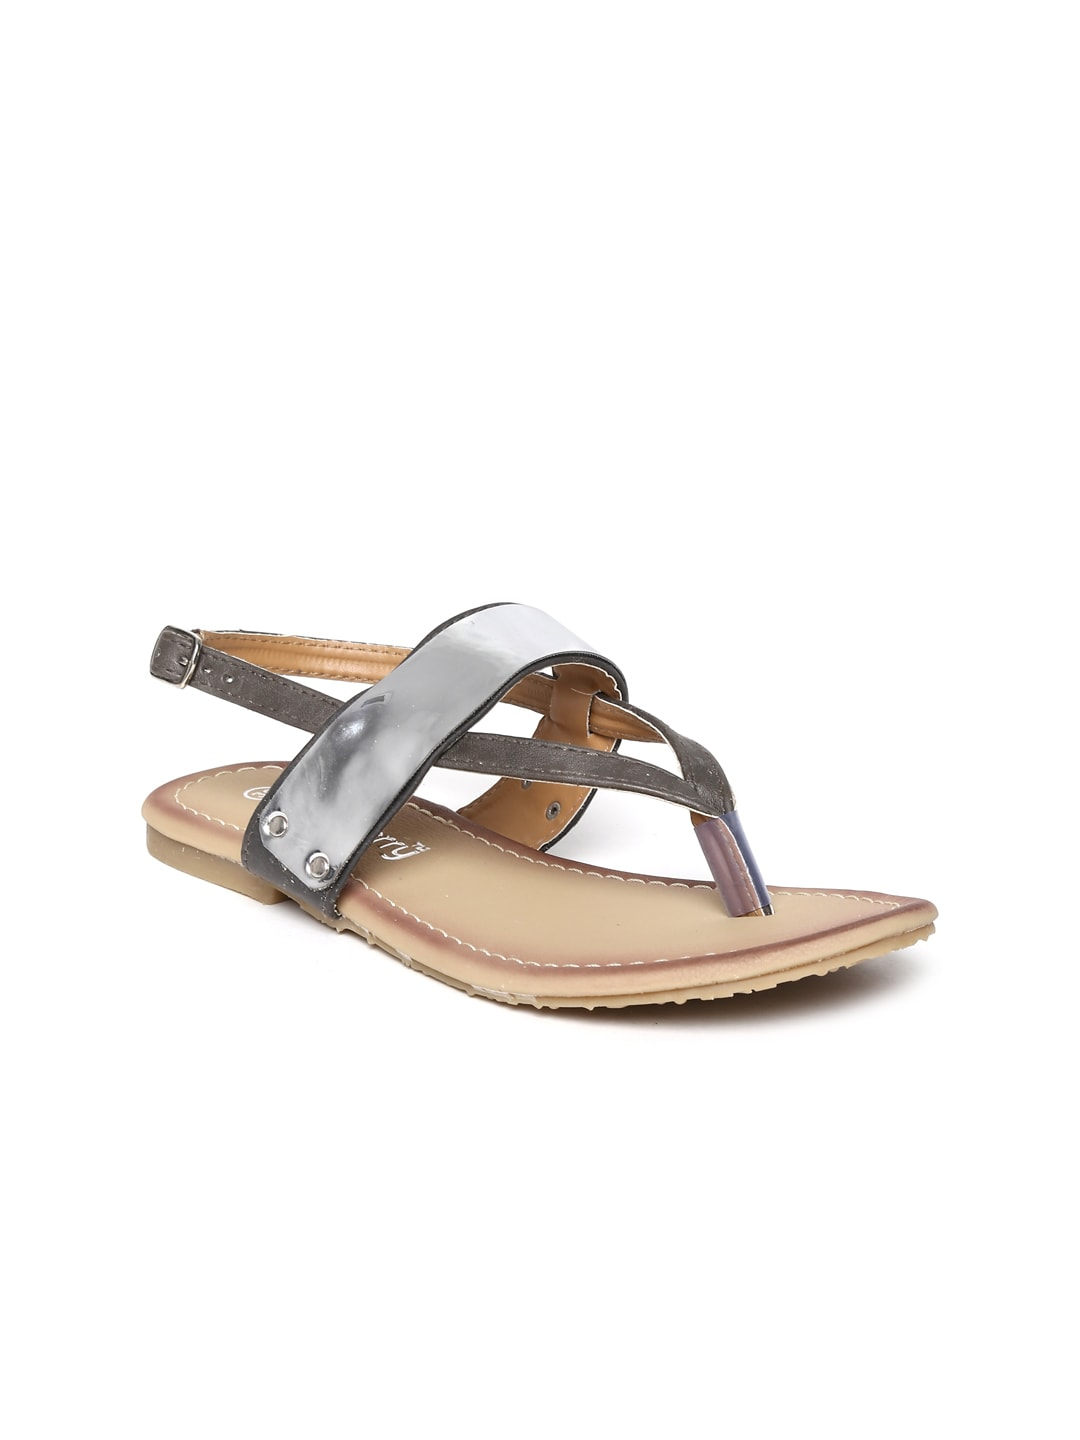 c69ff52e13a5 Women Sandals   Floaters Price List in India 2 April 2019